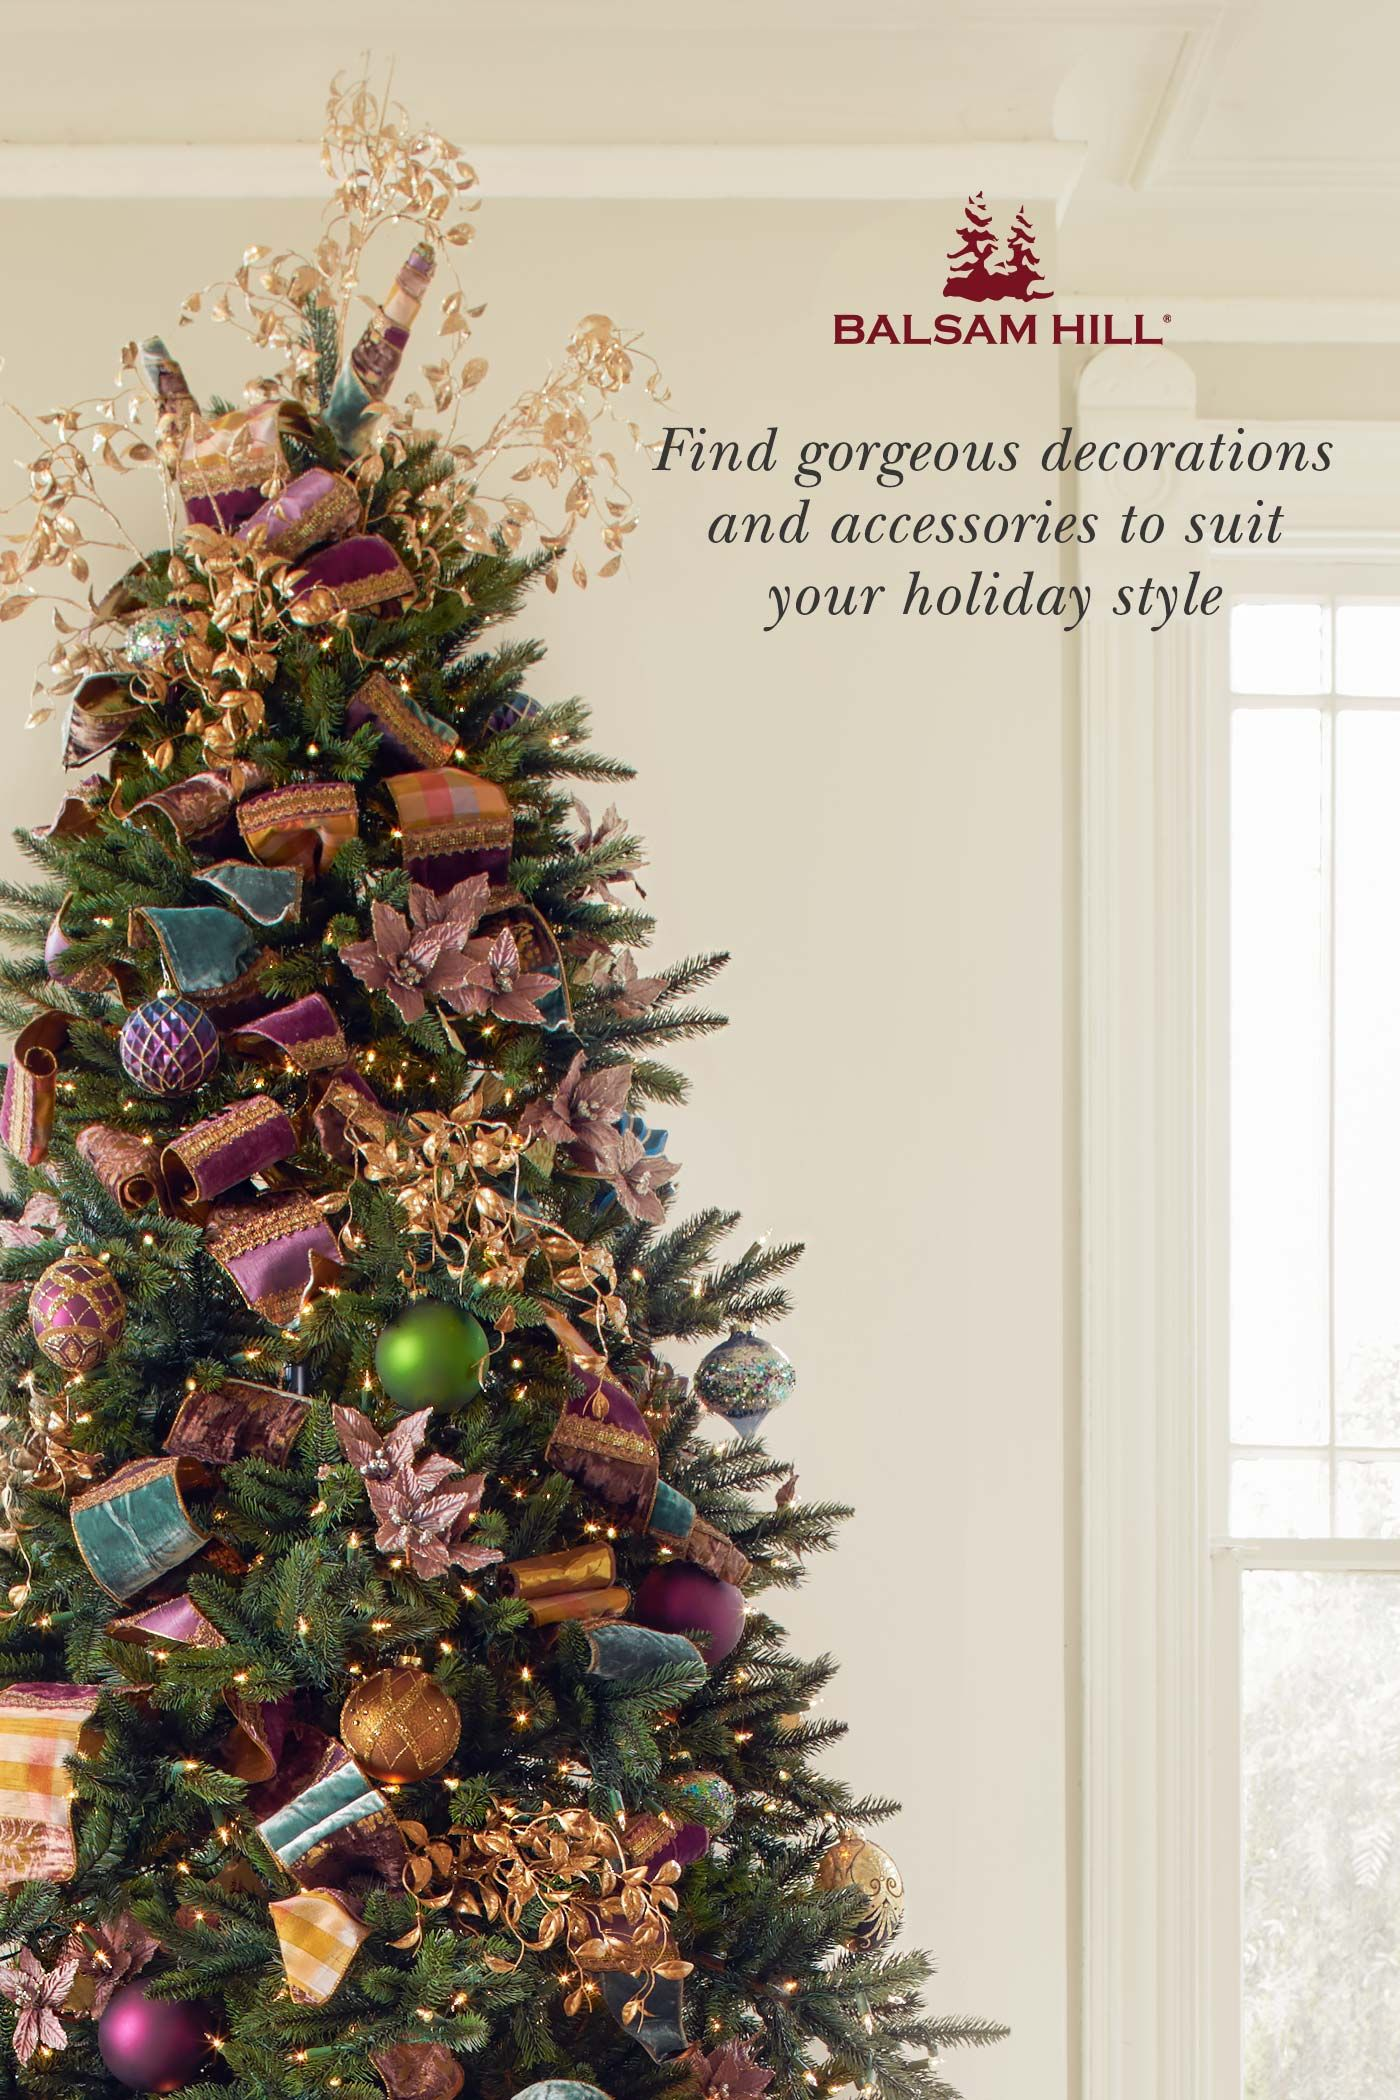 Balsam Hill Offers A Wide Range Of Christmas Decorations To Suit Your Holiday Style From Ele Christmas Green Christmas Tree Decorations Christmas Decorations